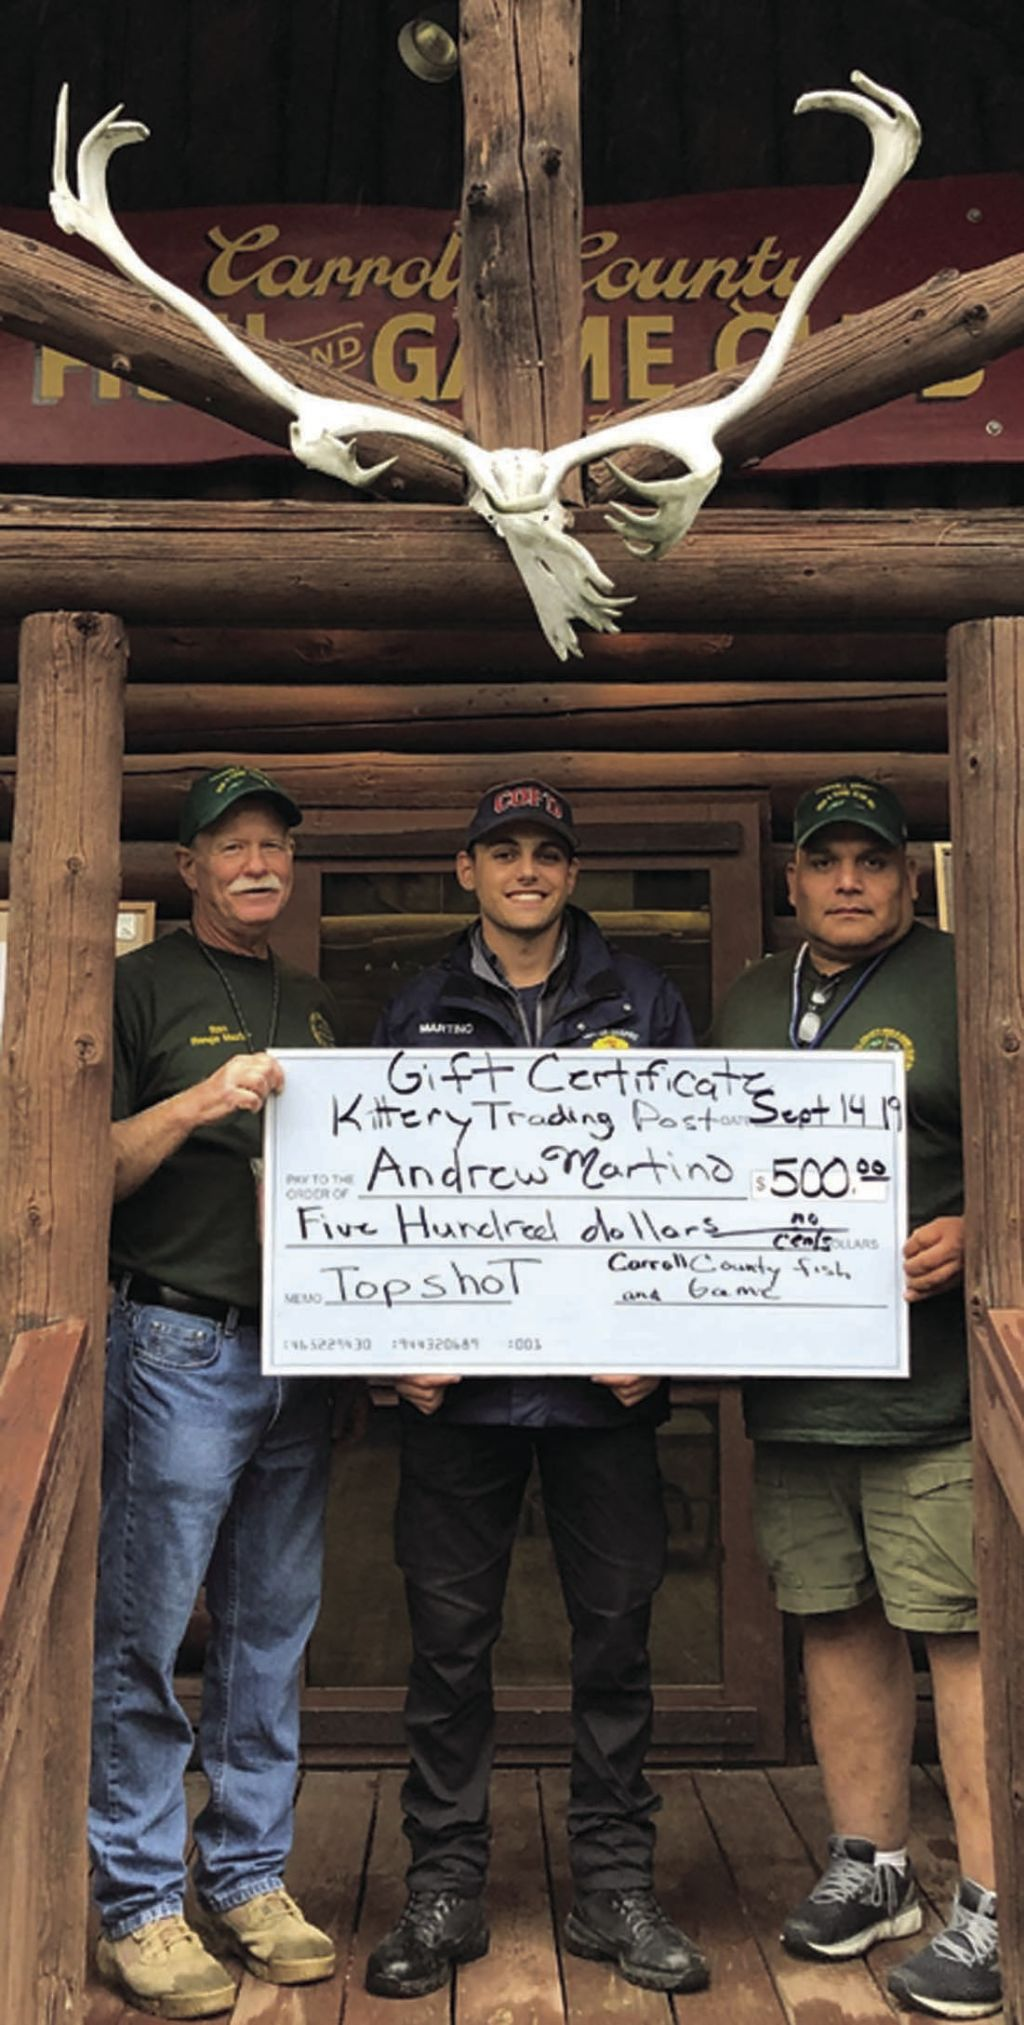 Ossipee firefighter wins shooting contest